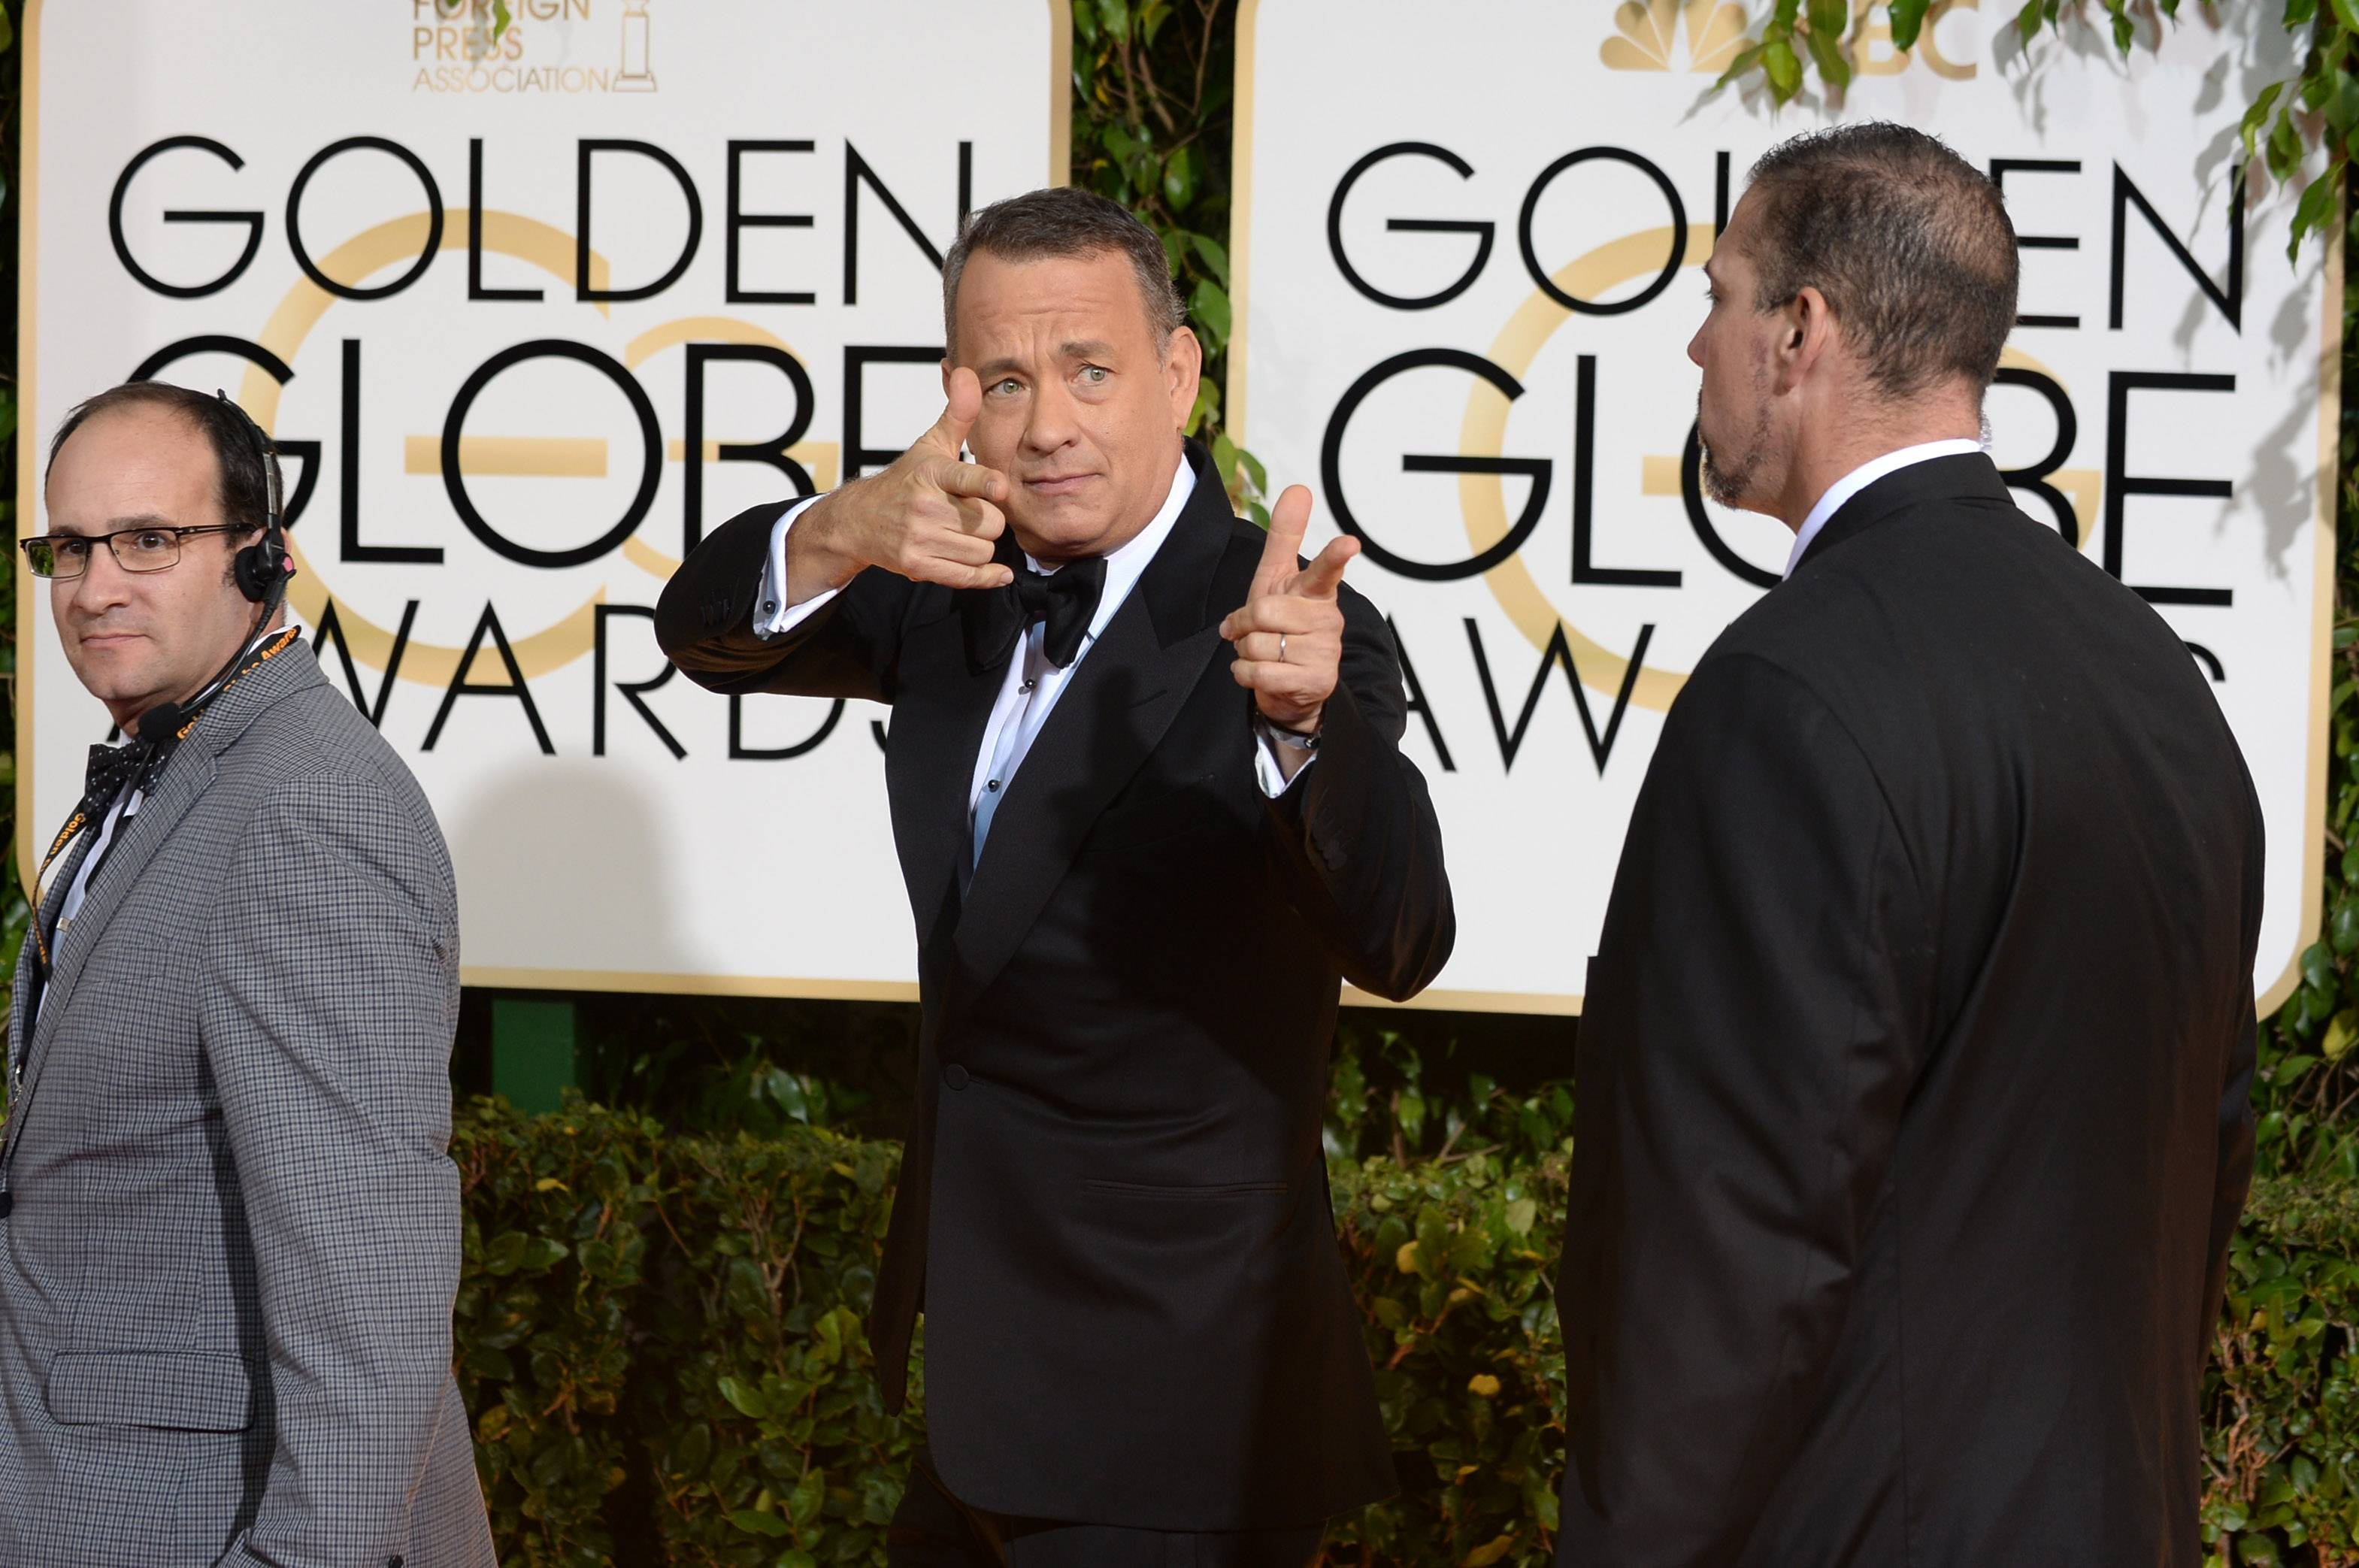 Actor Tom Hanks has a little fun before heading into the Golden Globes.